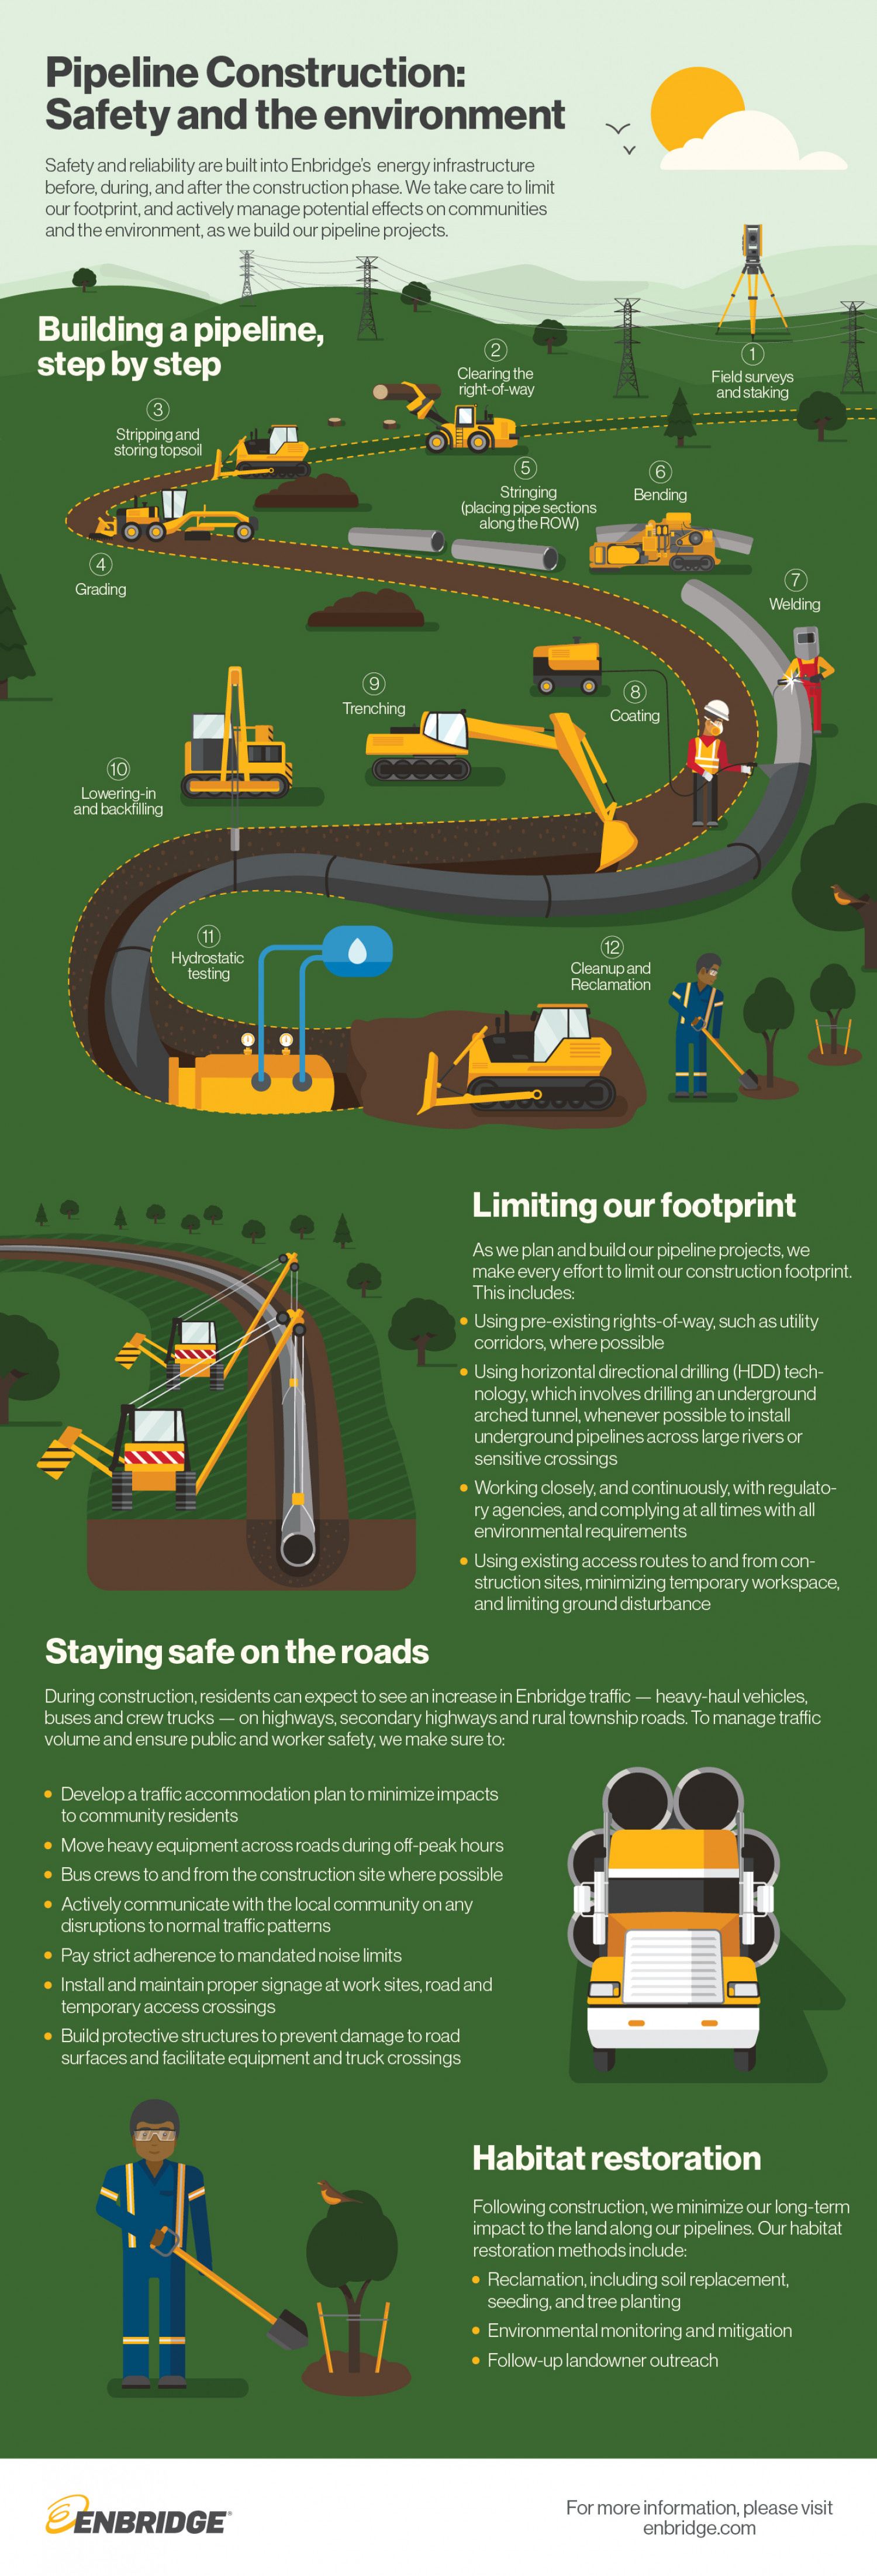 Pipeline Construction: Safety and the environment Infographic